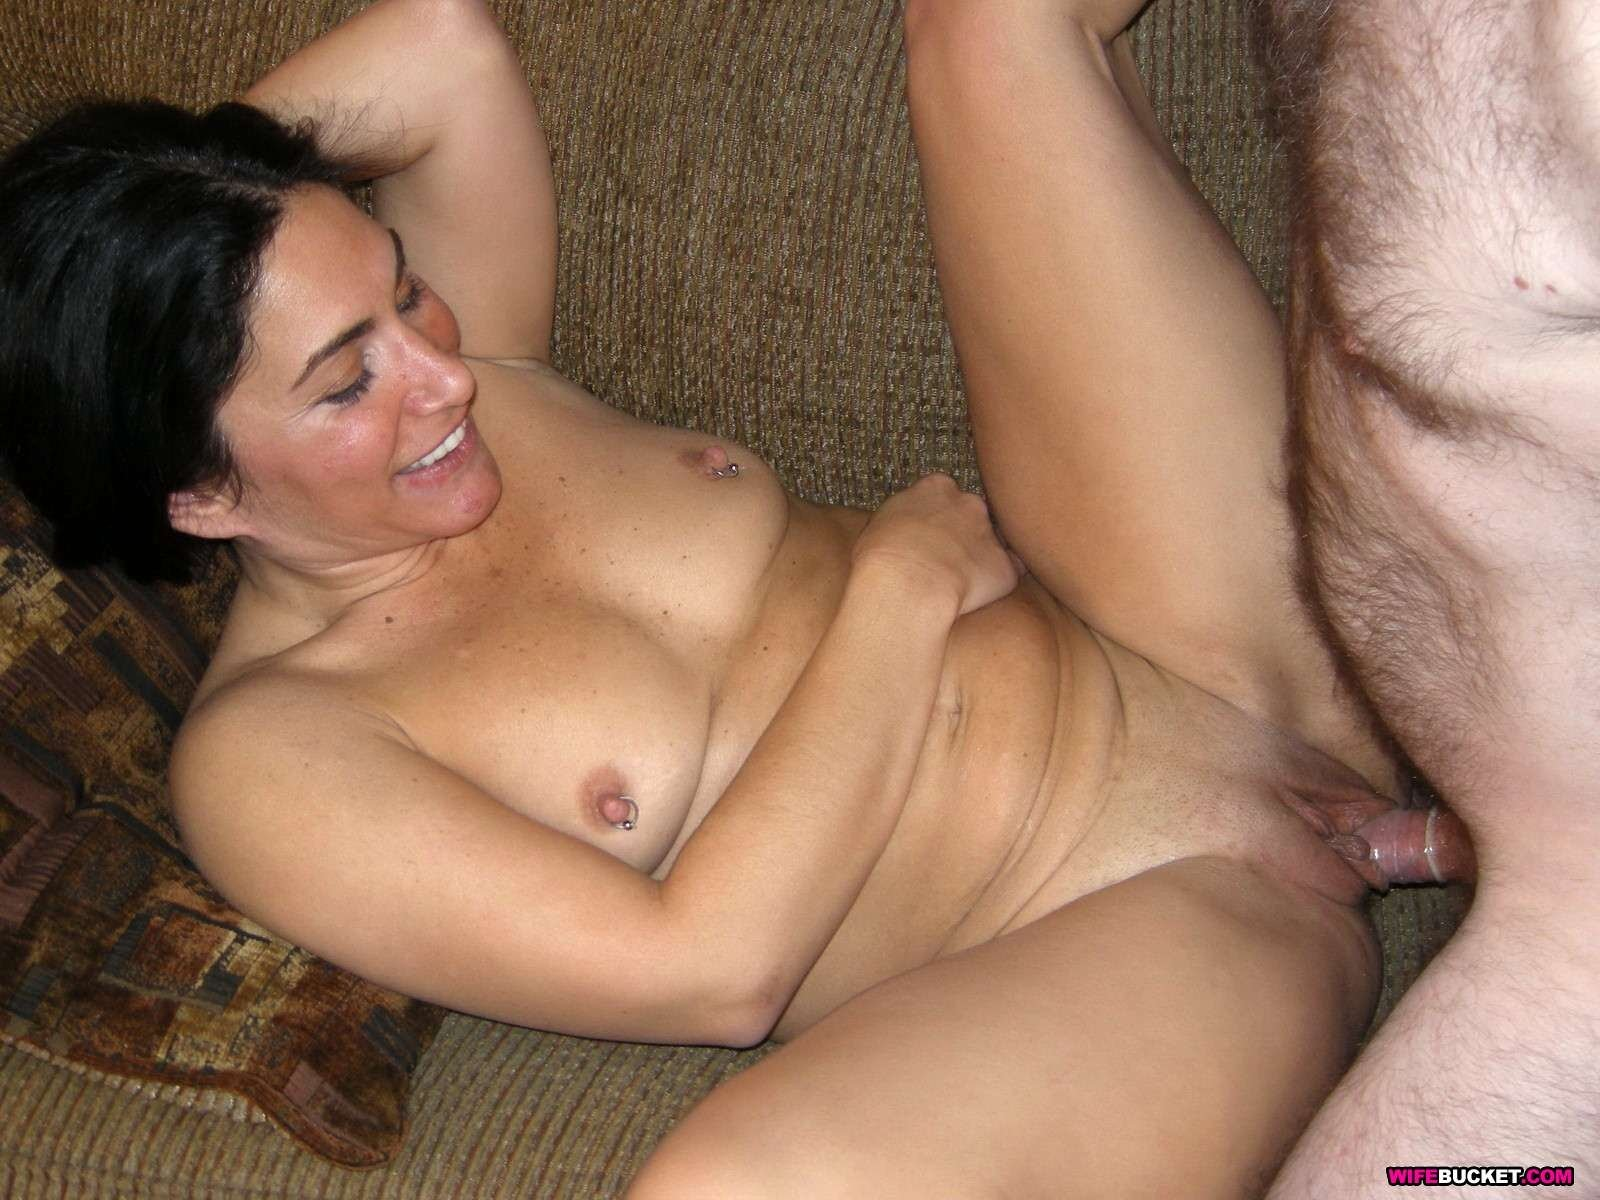 Step son caught me masturbating so i suck his dick